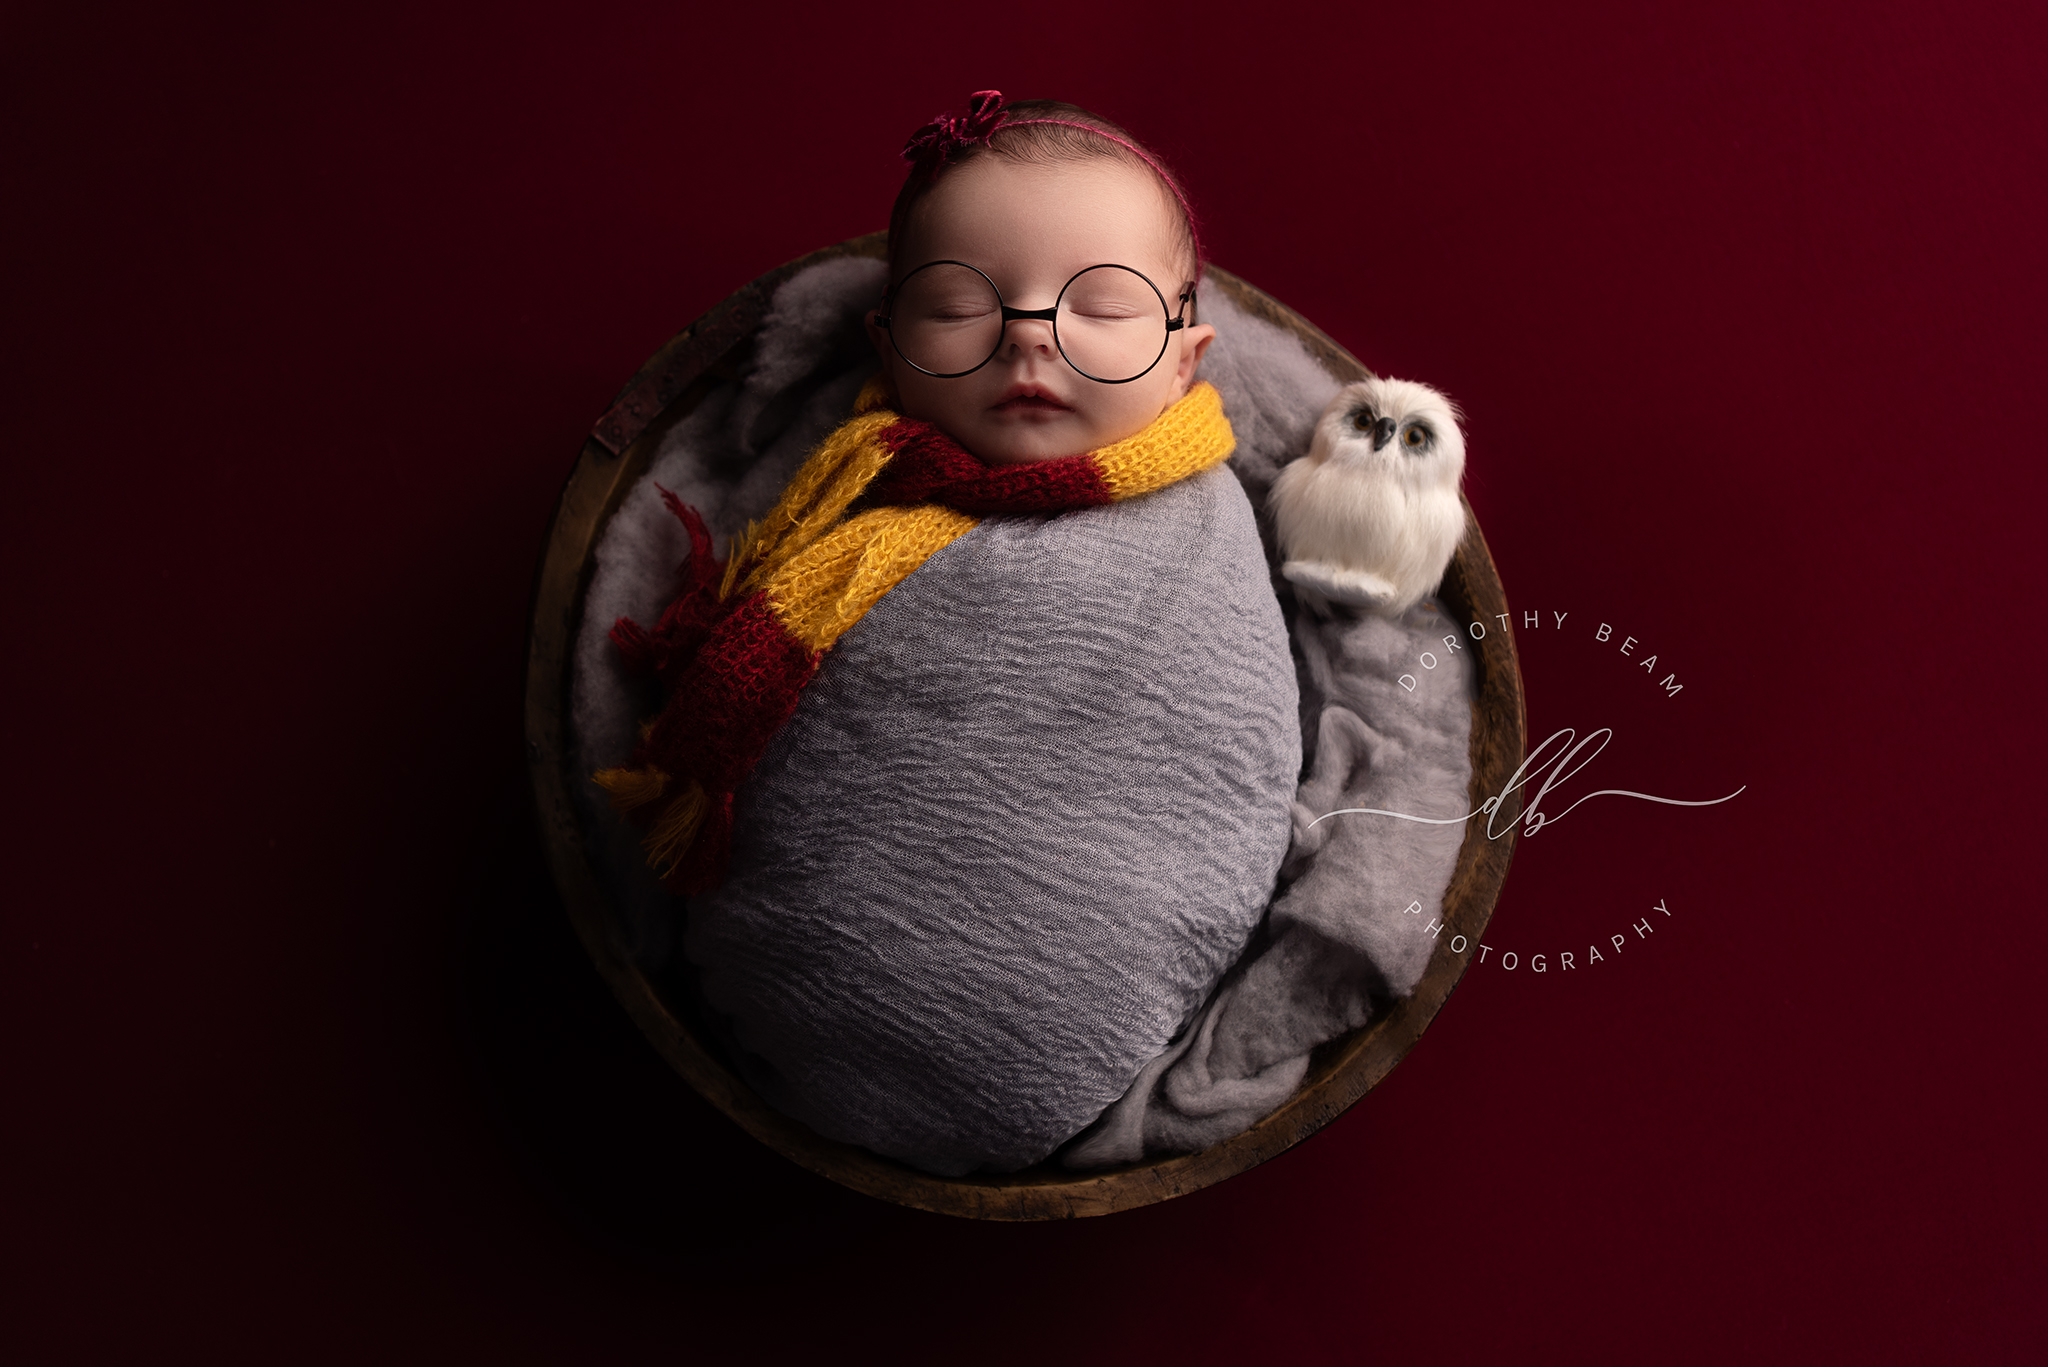 Harry Potter Newborn Baby Girl Dayton Oh